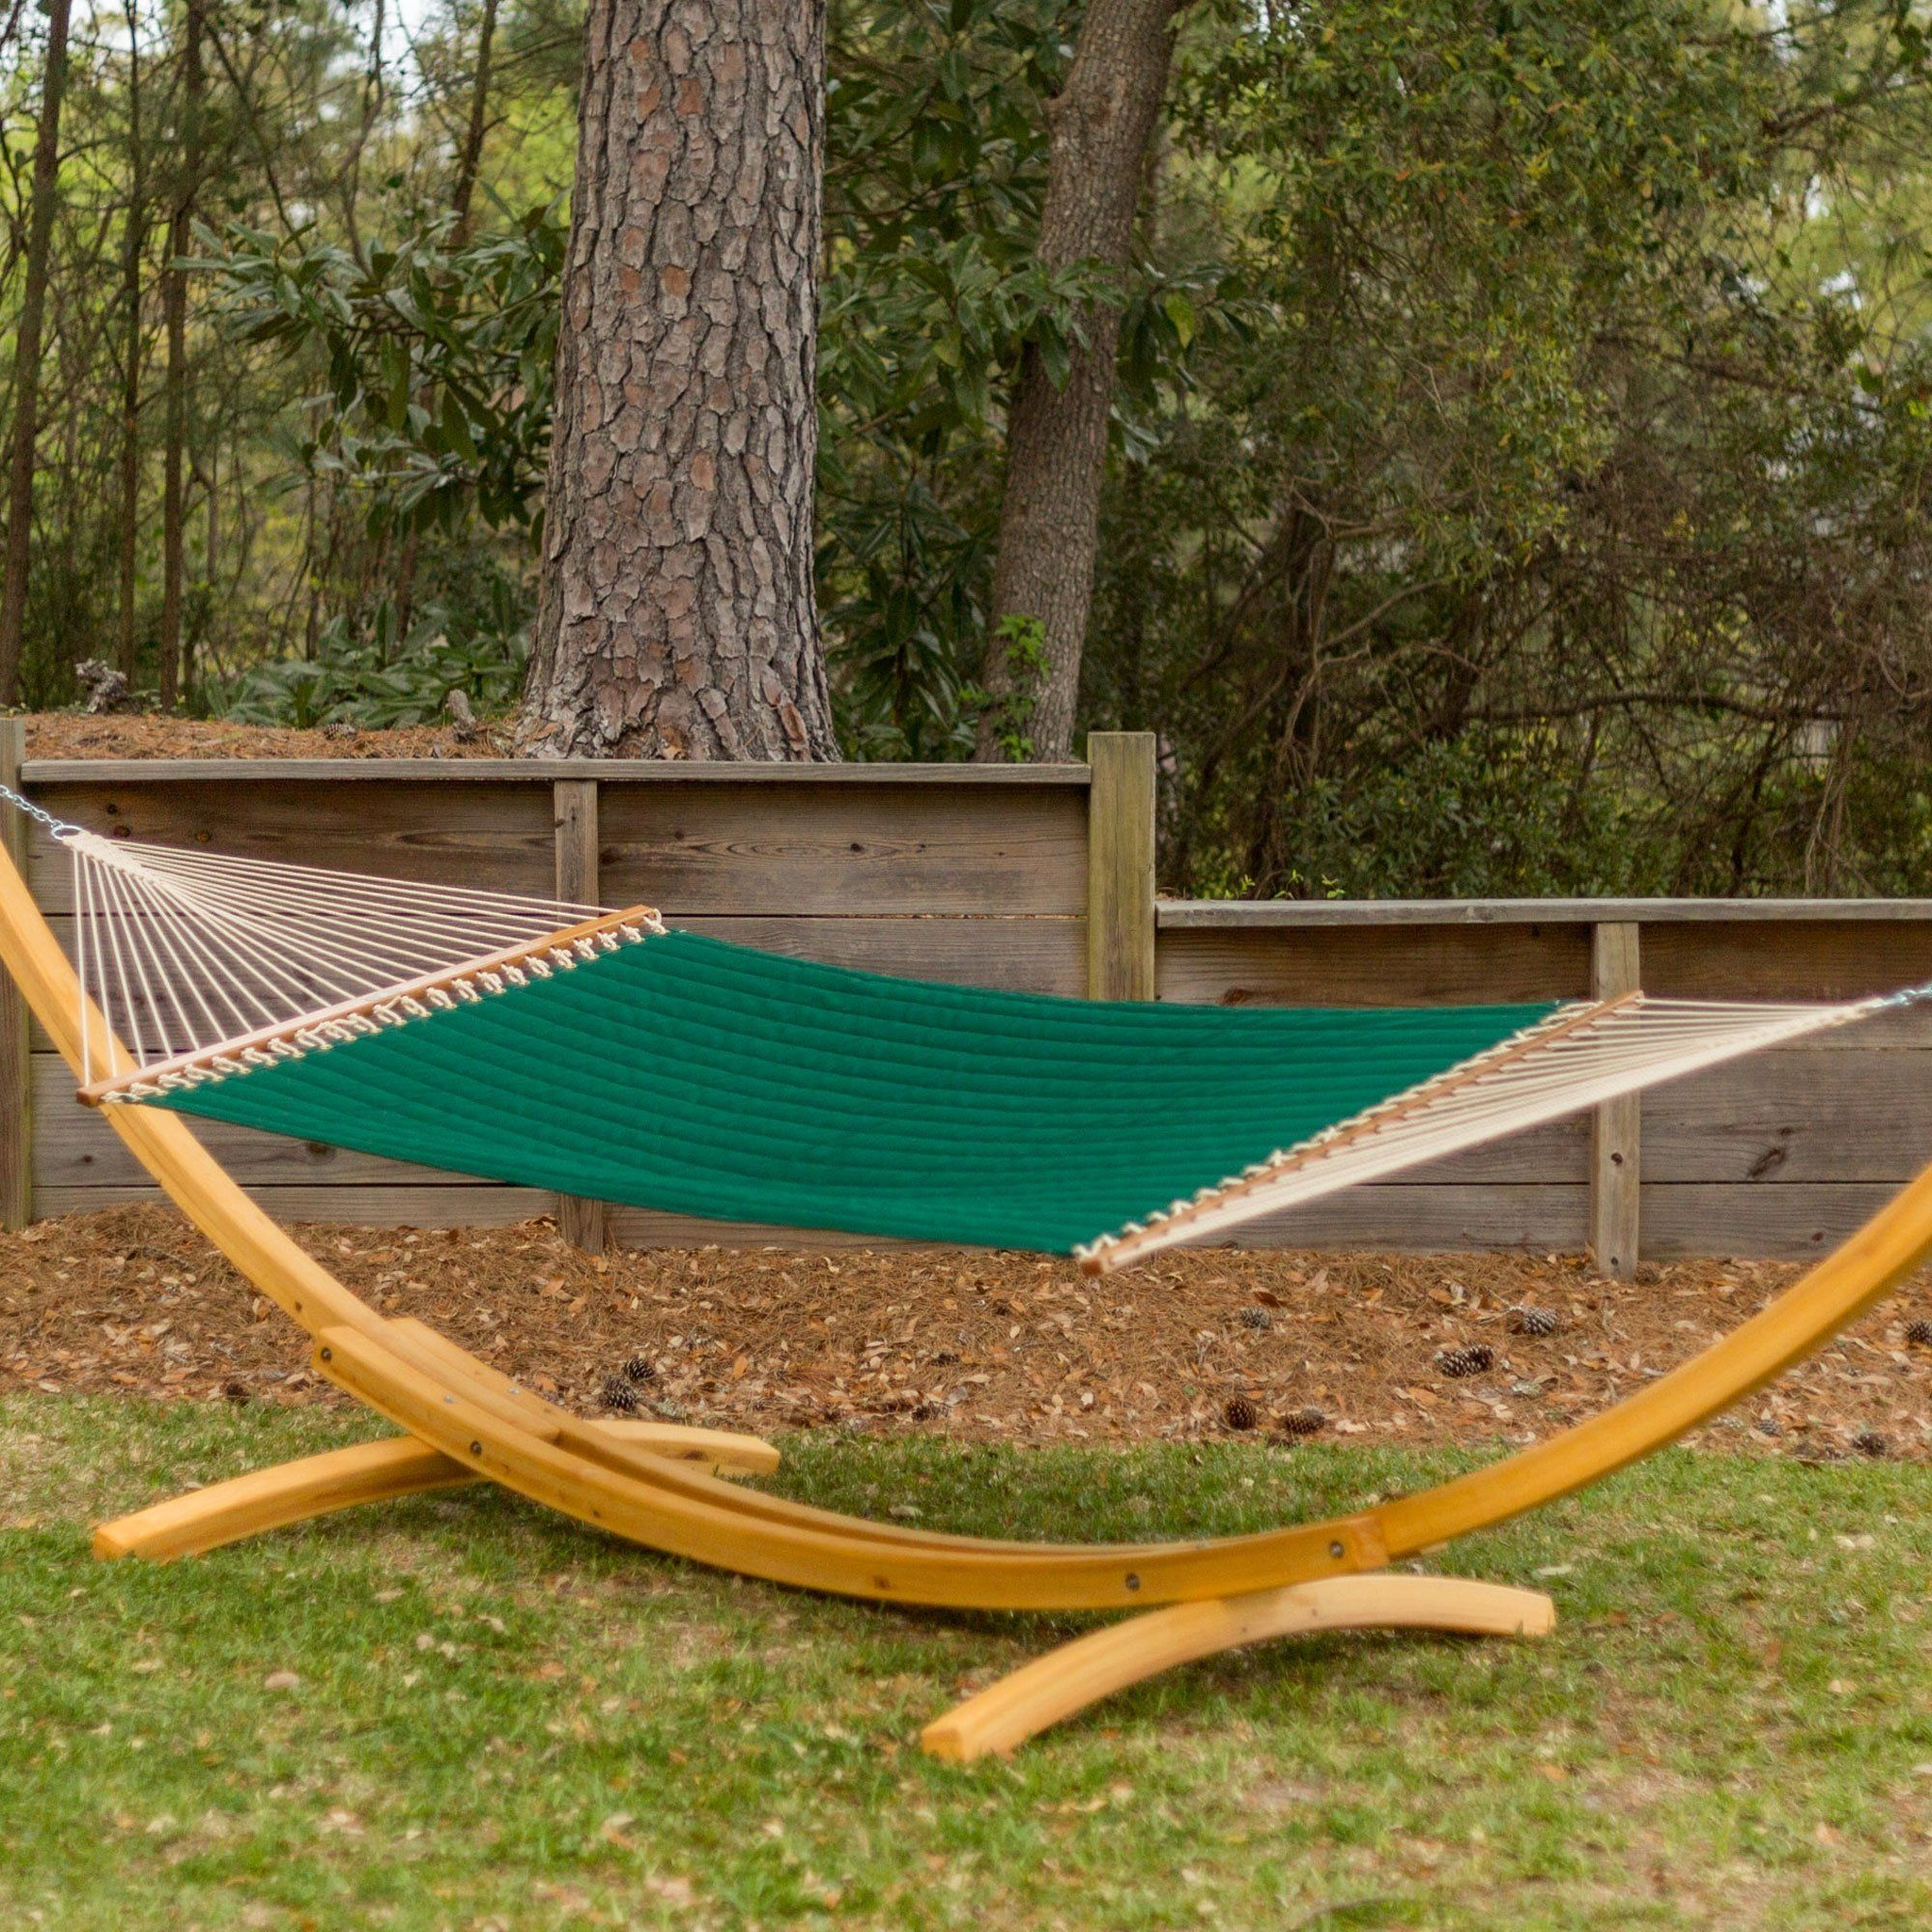 Patio Furniture Stores Near Boca Raton Fl: Large Quilted Fabric Hammock